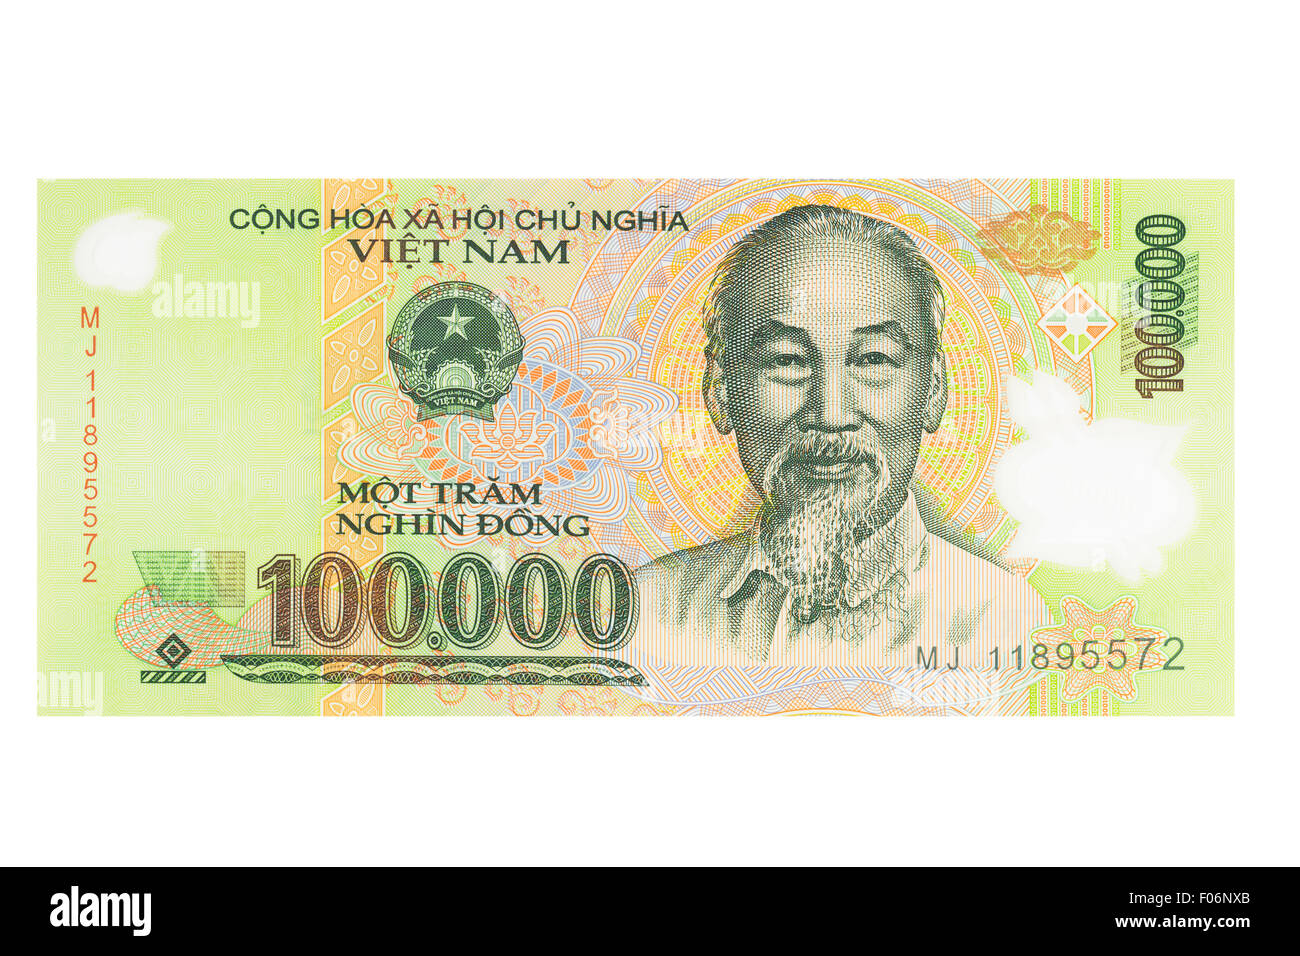 One hundred thousand vietnamese Dong banknote on a white background